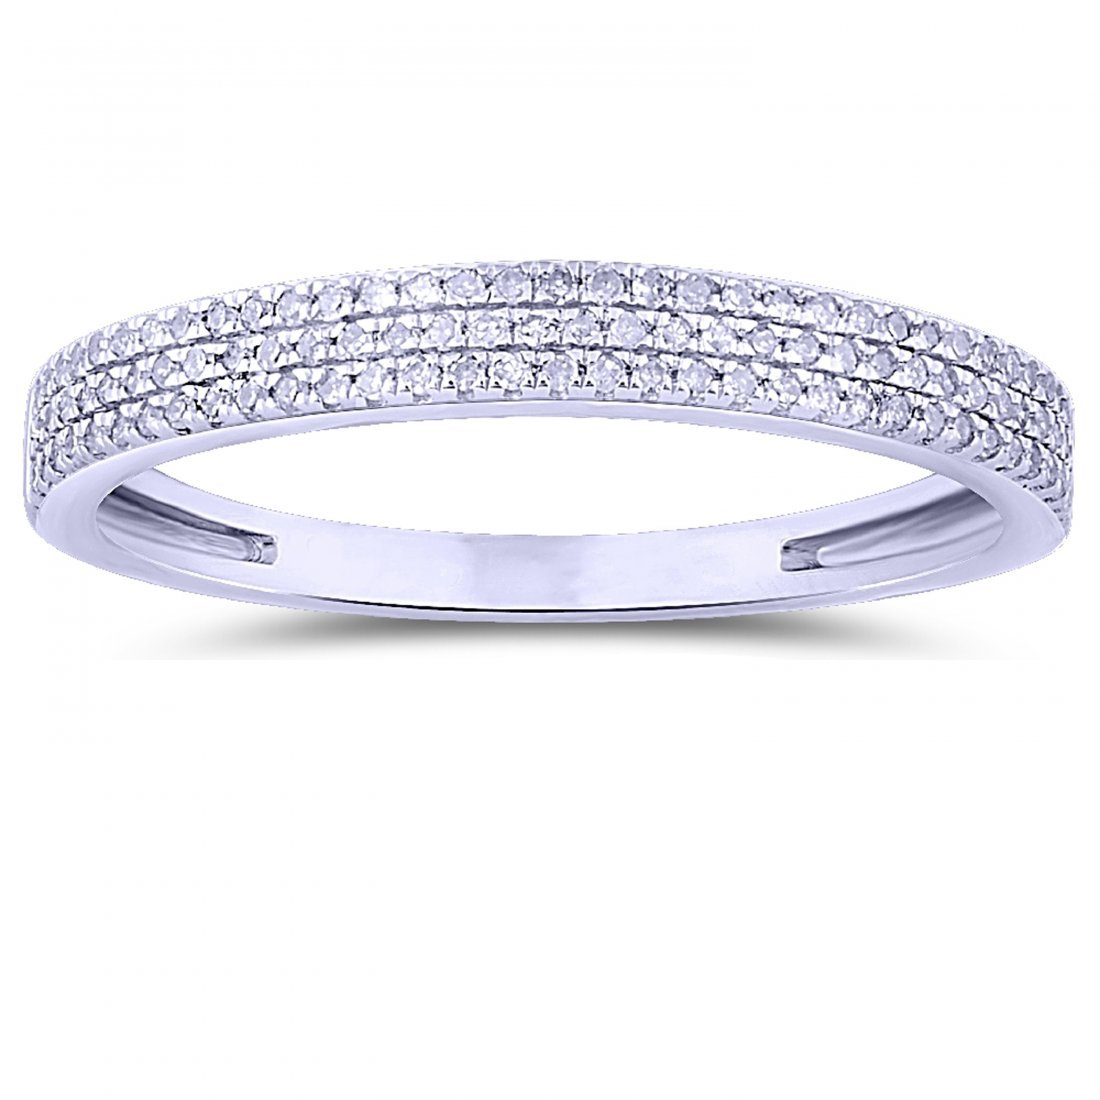 Straight 3-Row Diamond Band In 14K White Gold | 433328